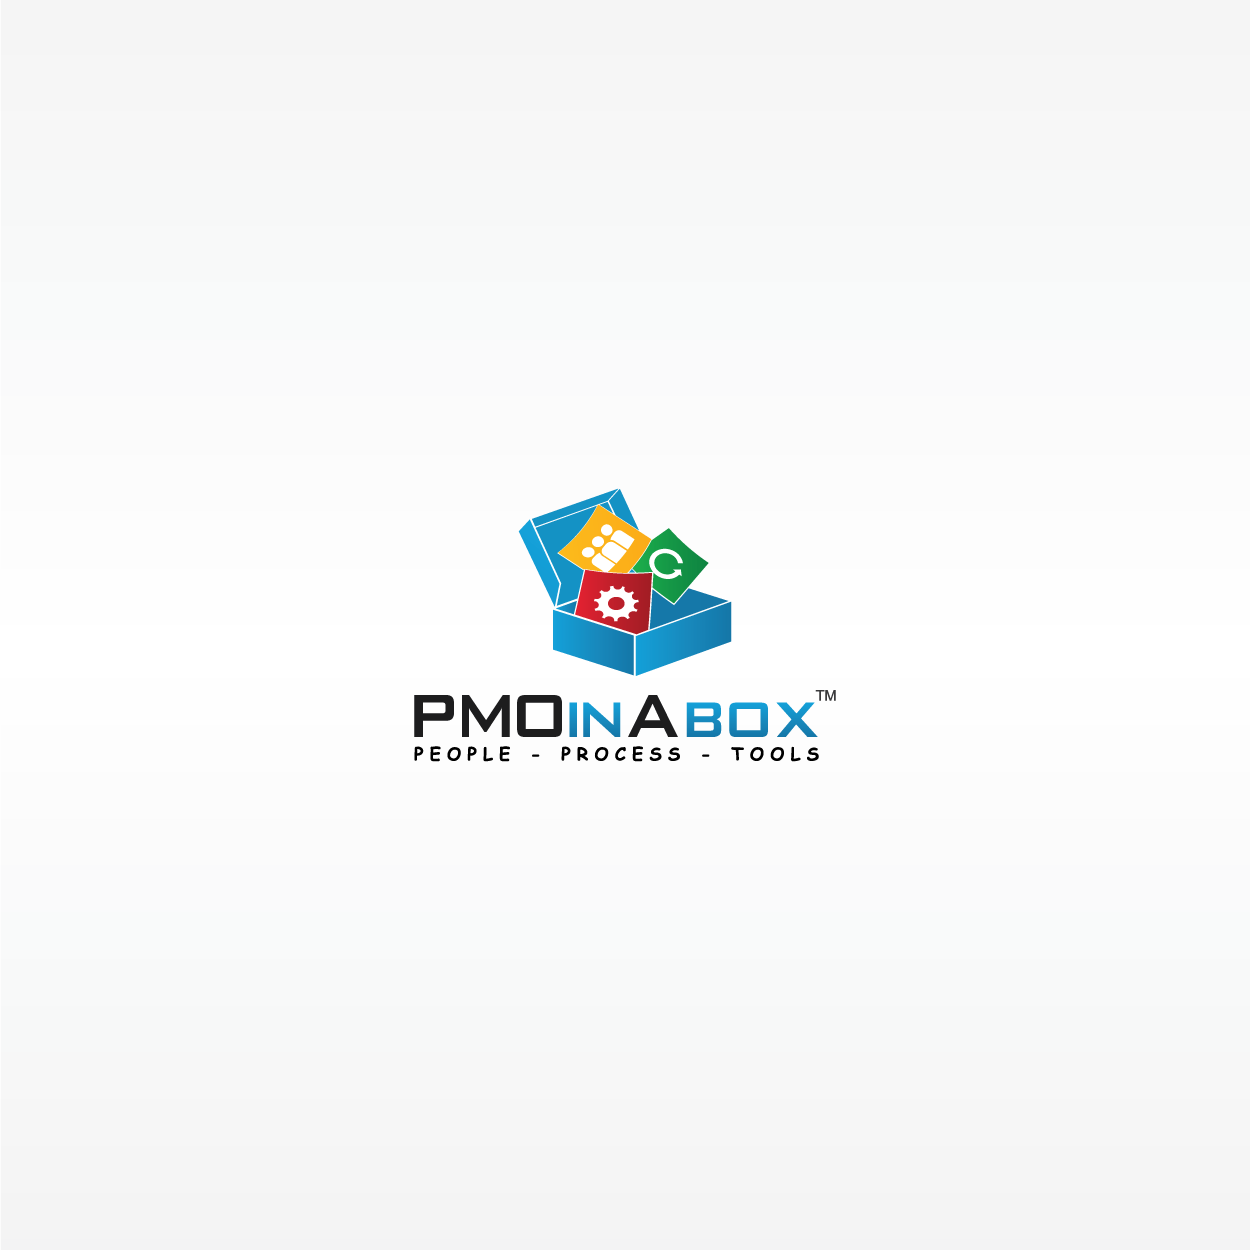 Help PMO In A Box (TM) with a new logo